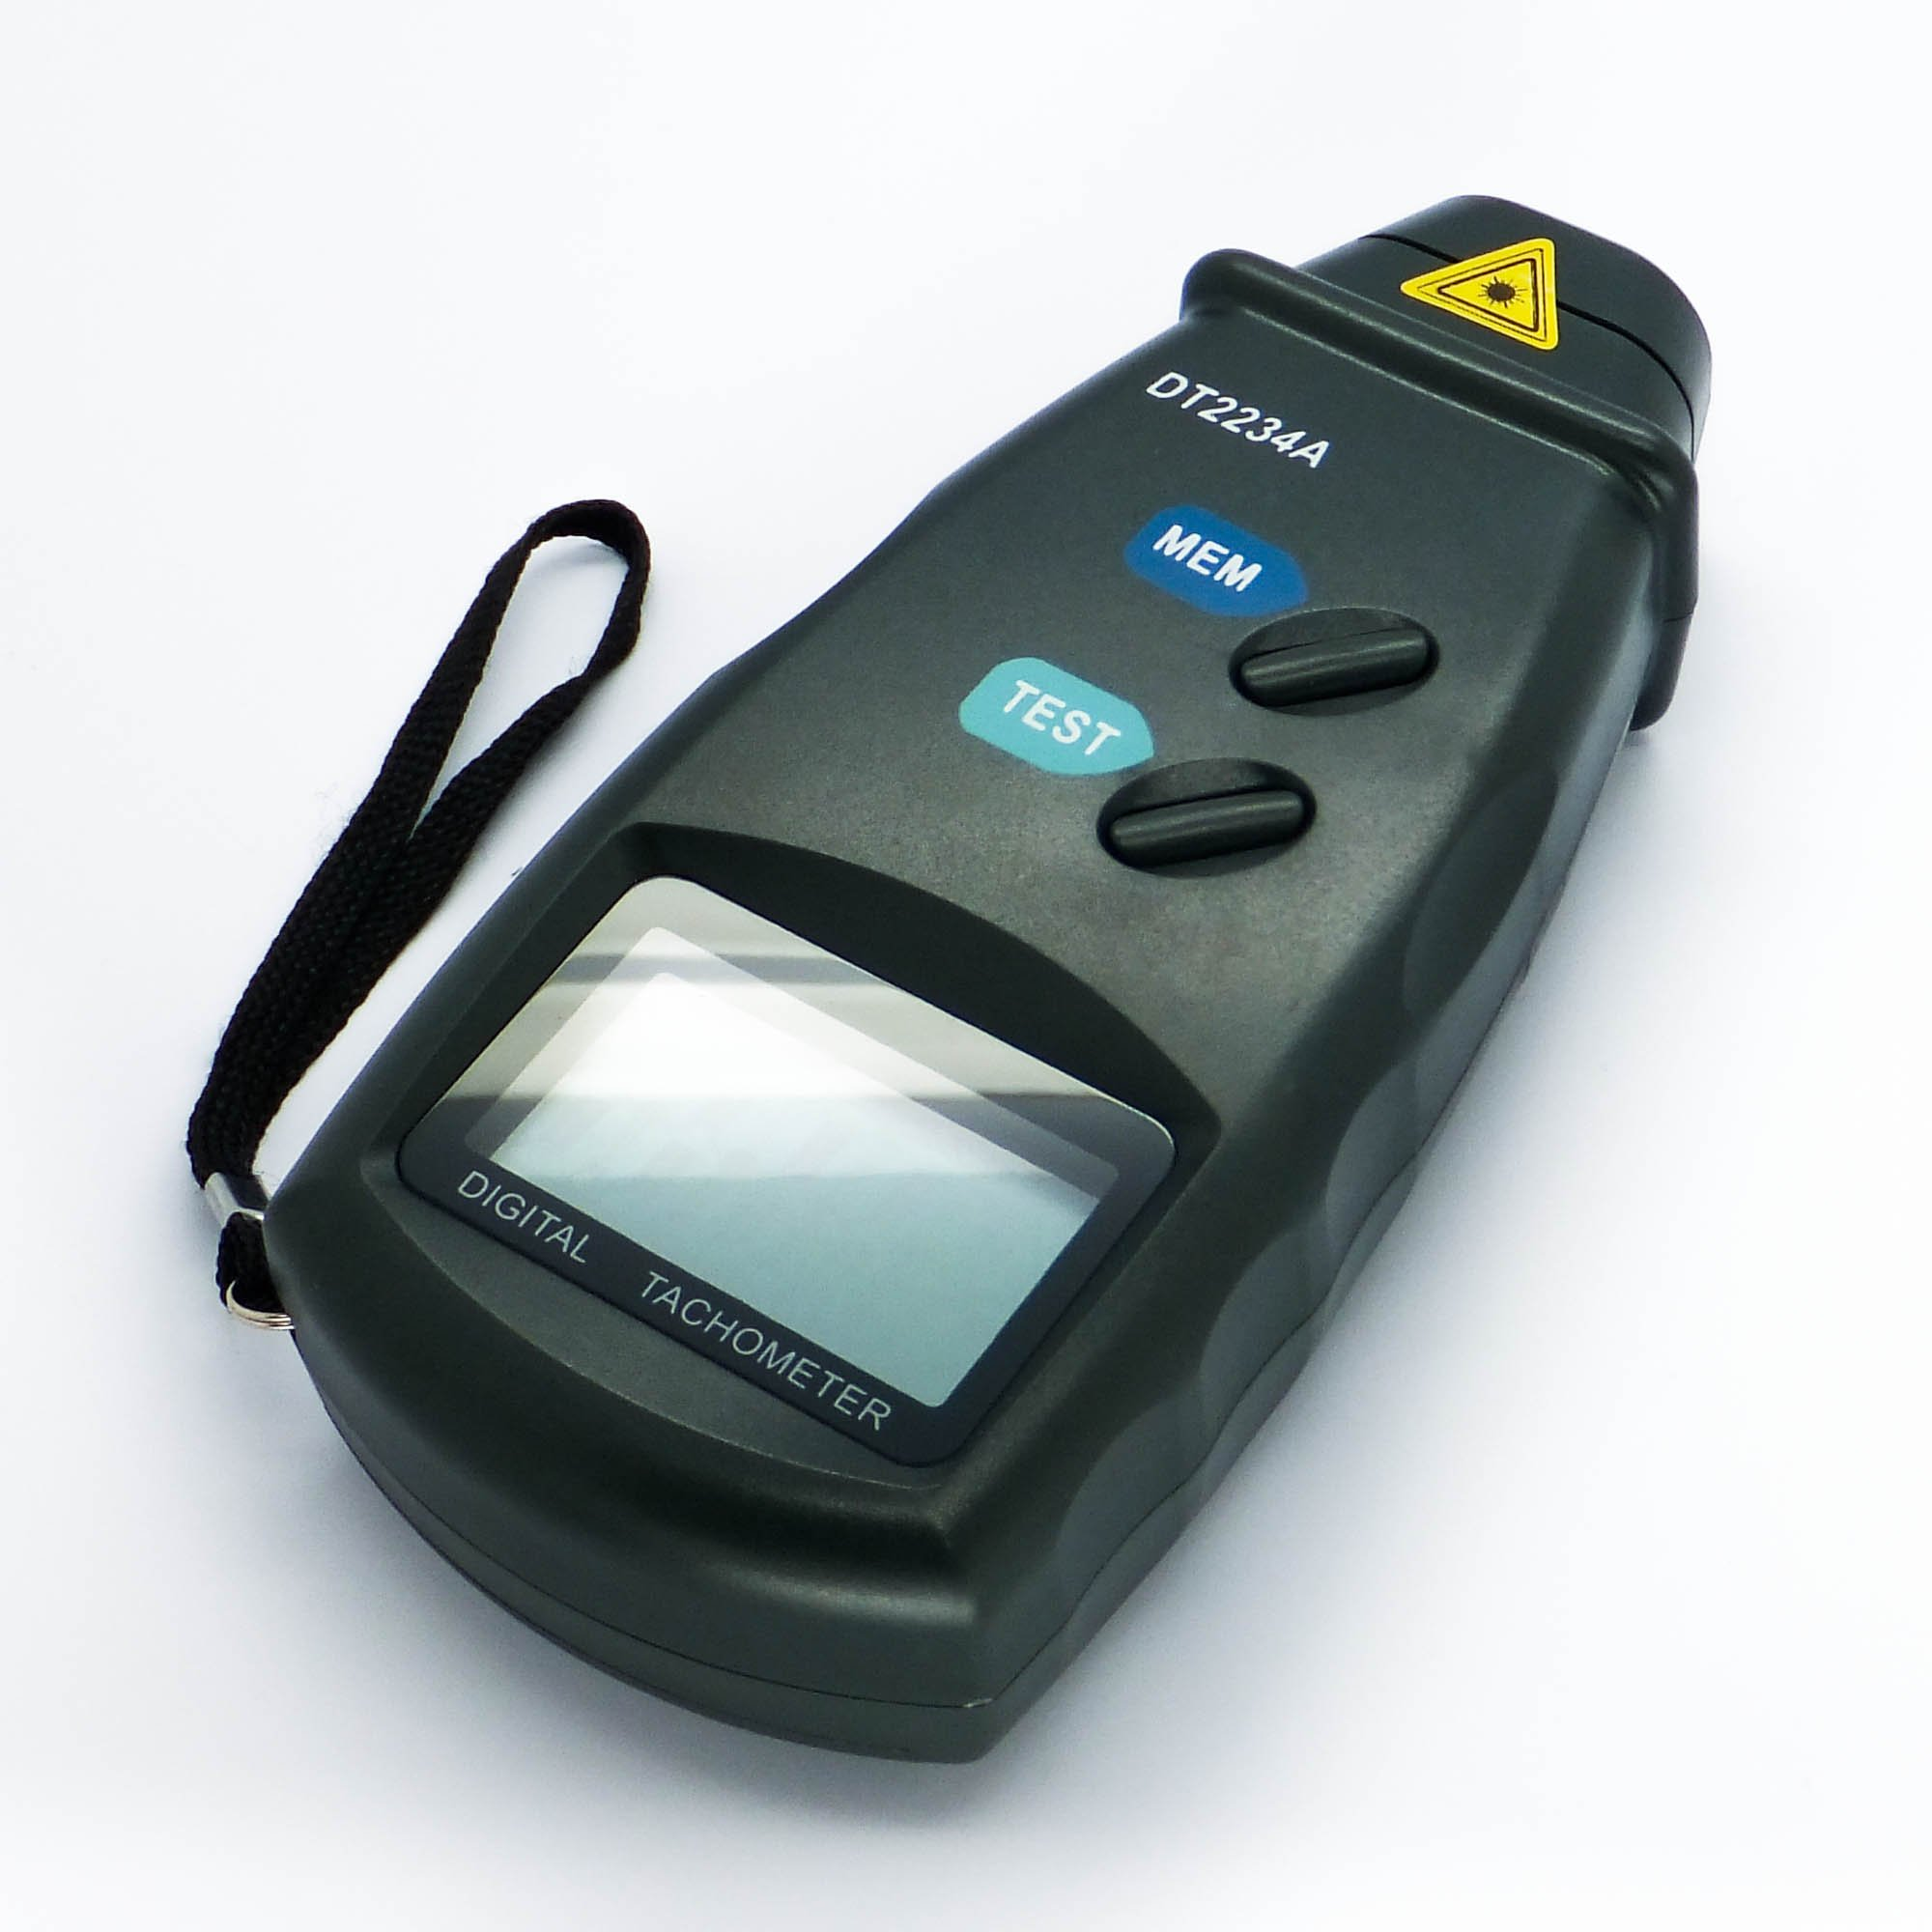 Digital Photo Laser Tachometer Non Contact Tach RPM Meter by CyberTech